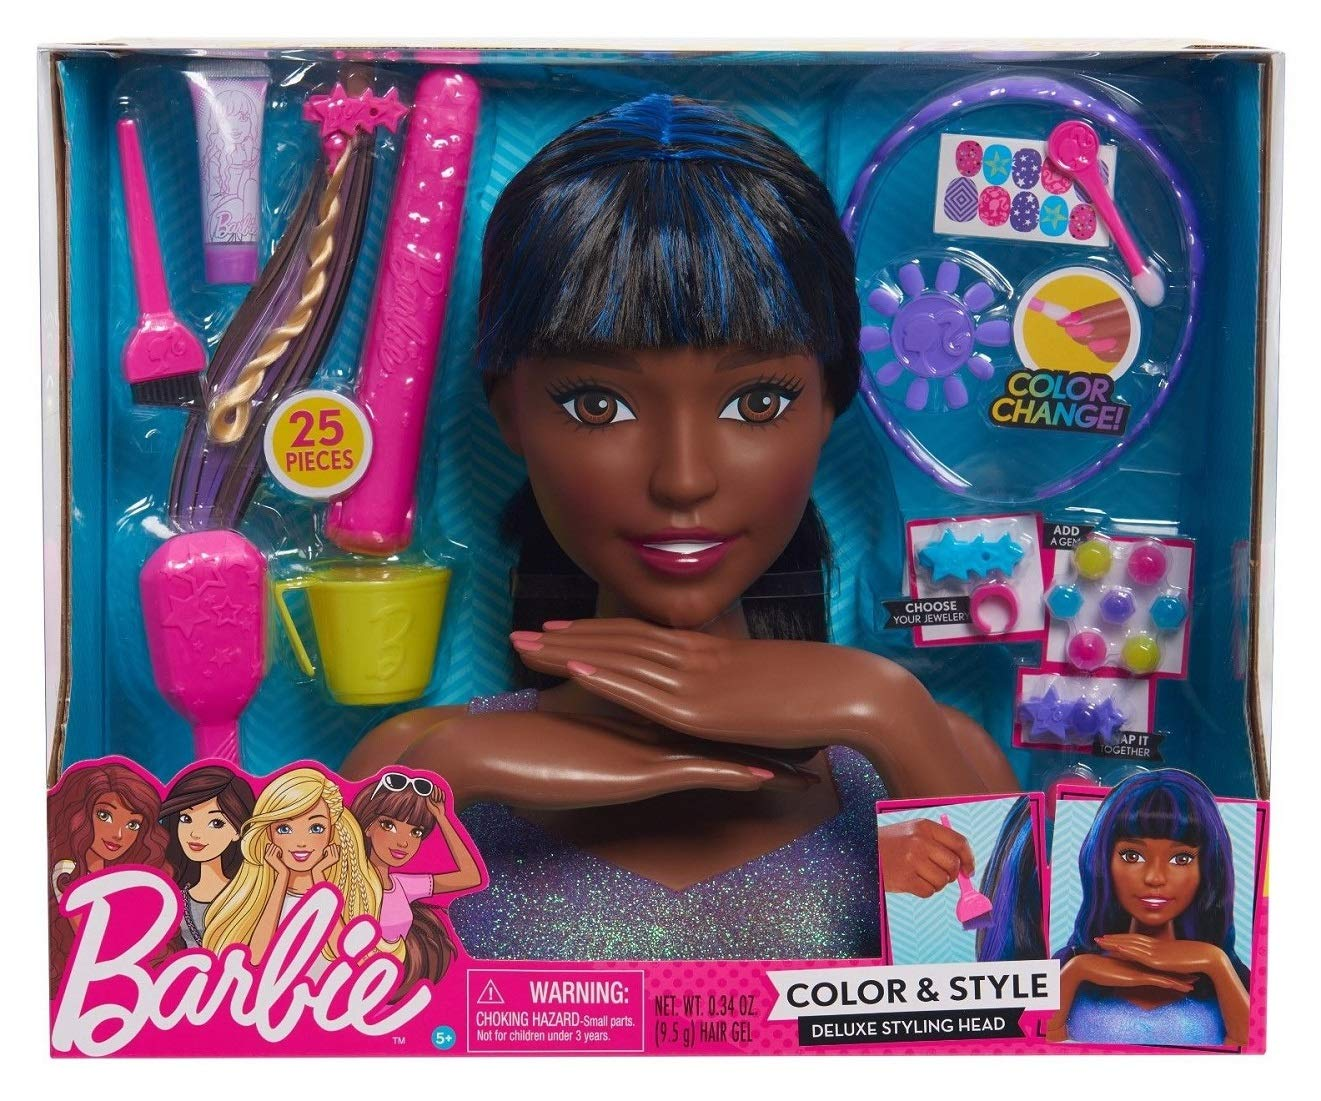 Barbie Color and Style Deluxe Styling Head Black and Blue Hair